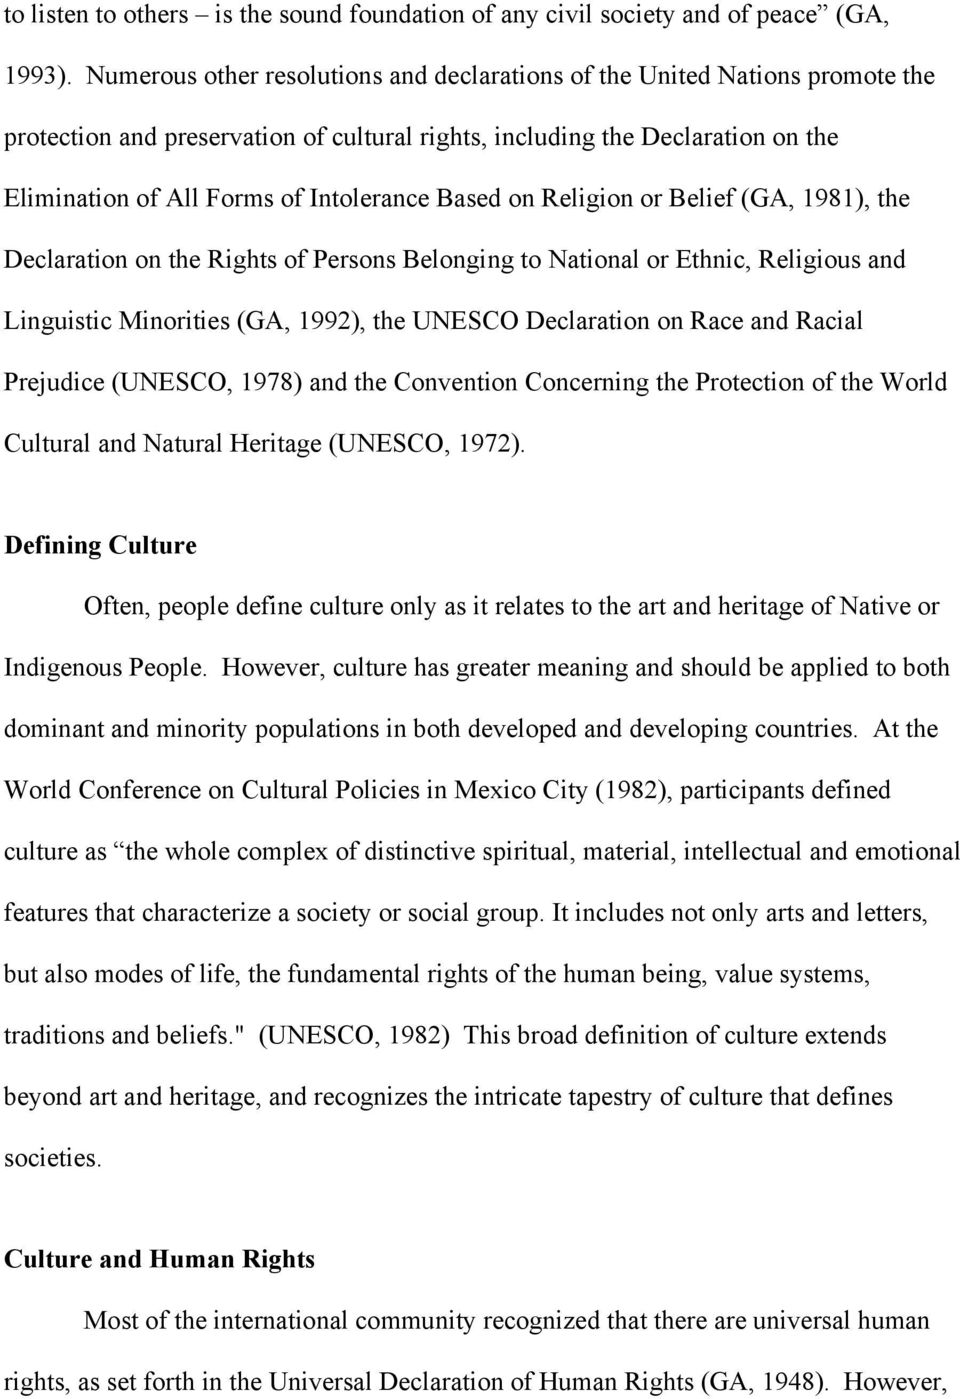 Based on Religion or Belief (GA, 1981), the Declaration on the Rights of Persons Belonging to National or Ethnic, Religious and Linguistic Minorities (GA, 1992), the UNESCO Declaration on Race and